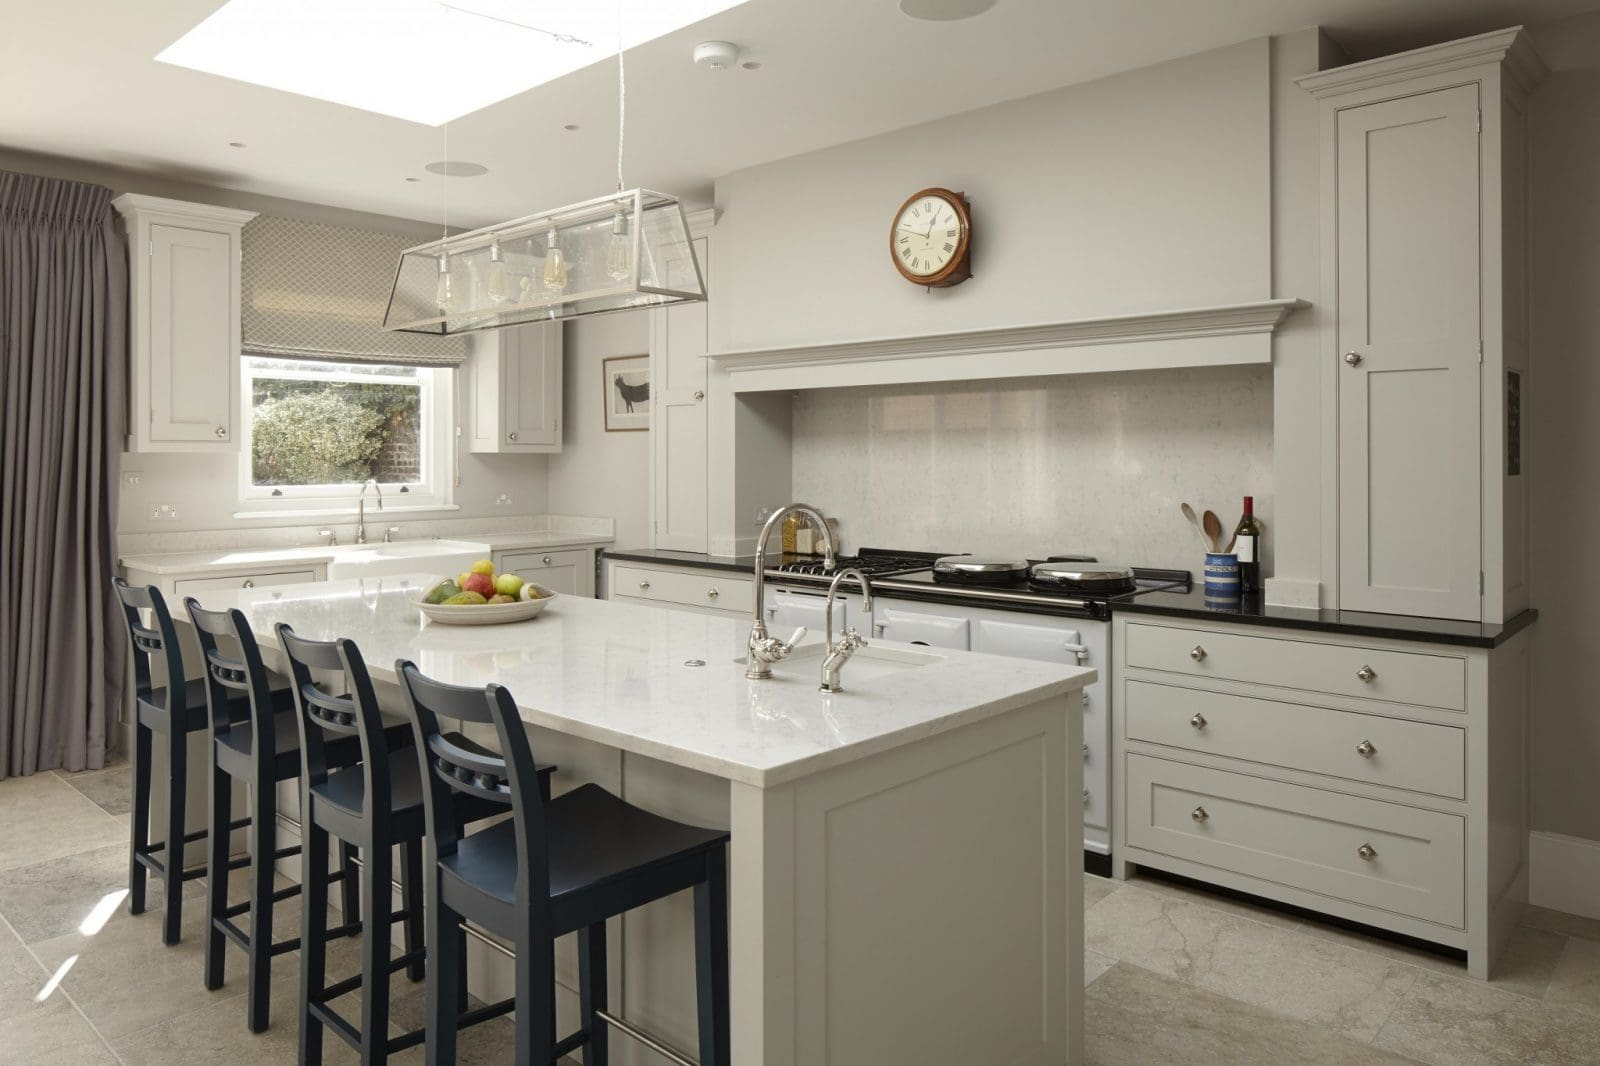 10 Kitchen Cabinet Tips: Wandsworth, London Traditional Kitchen